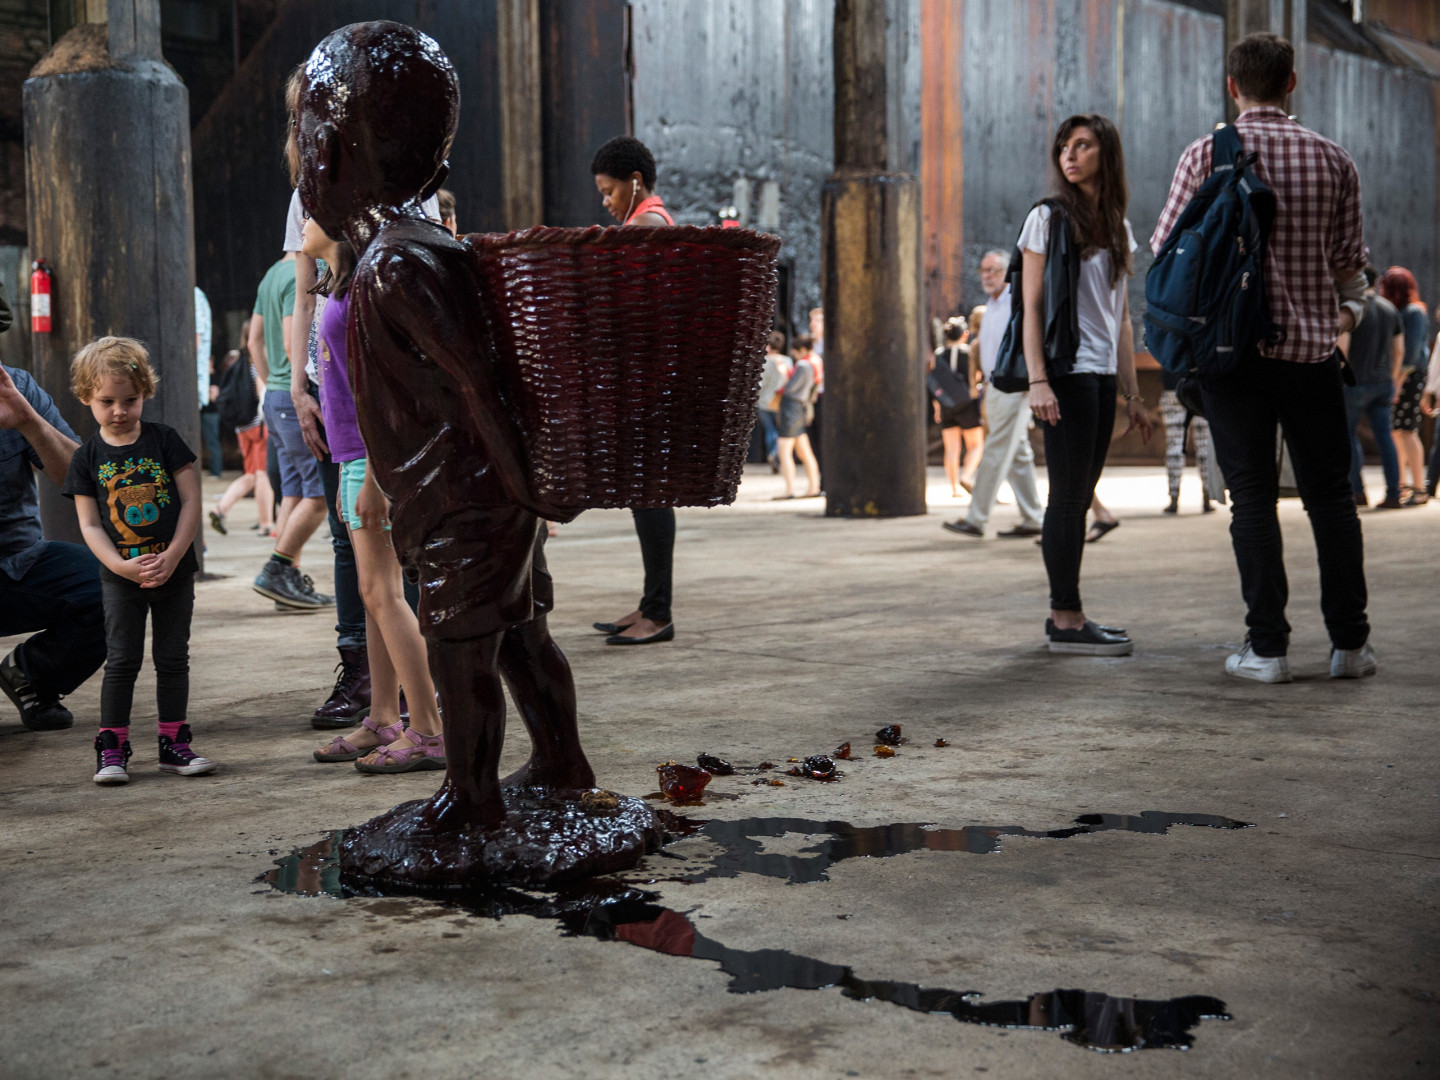 Walker's candy boy sculptures started melting fast in the non-climate-controlled factory, and the result looks a lot like blood